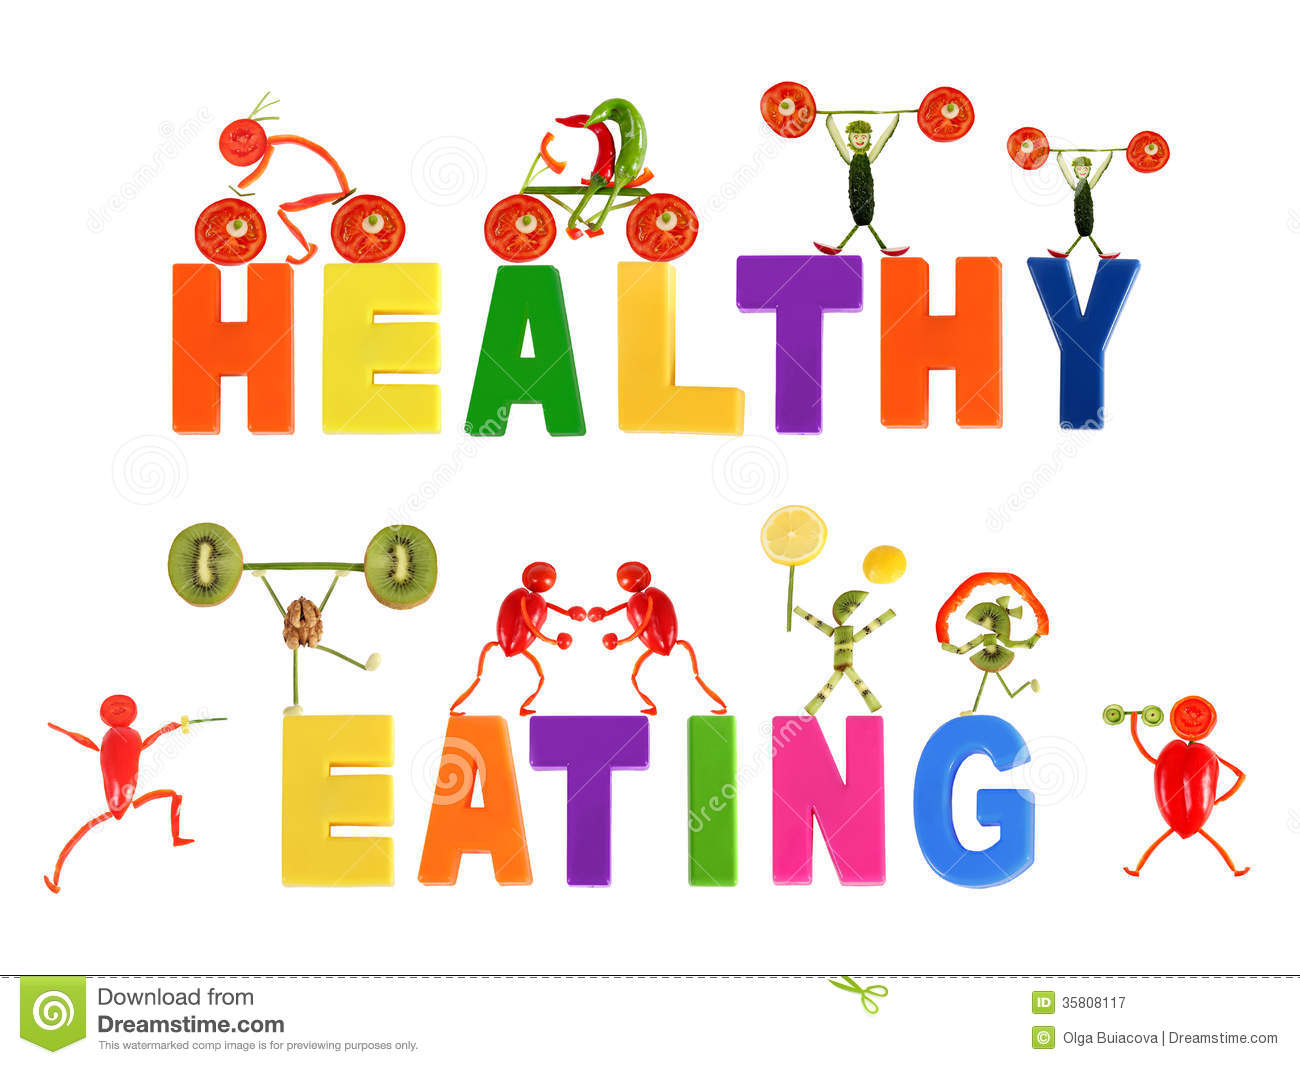 Grain clipart healthy meal Healthy Healthy Healthy Collection clipart